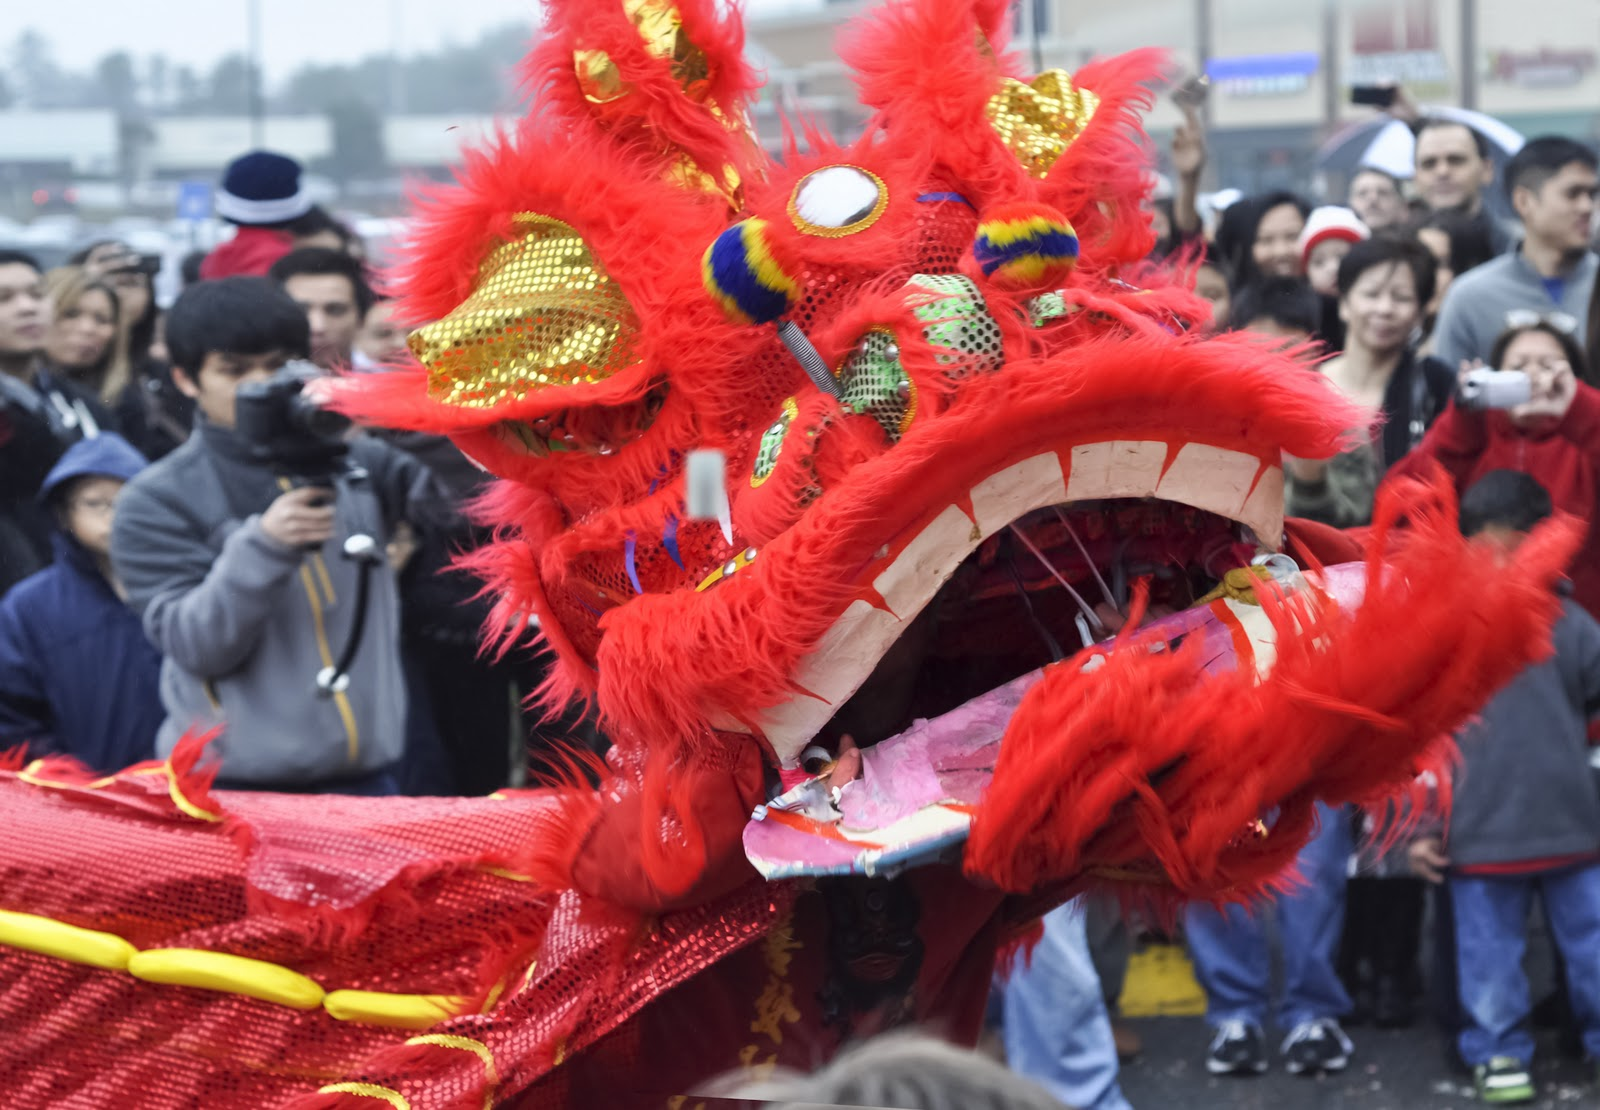 essay vietnamese new year The vietnamese new year is the tết nguyên đán which most times is the same day as the chinese new year due to the vietnamese using a lunar calendar similar to.